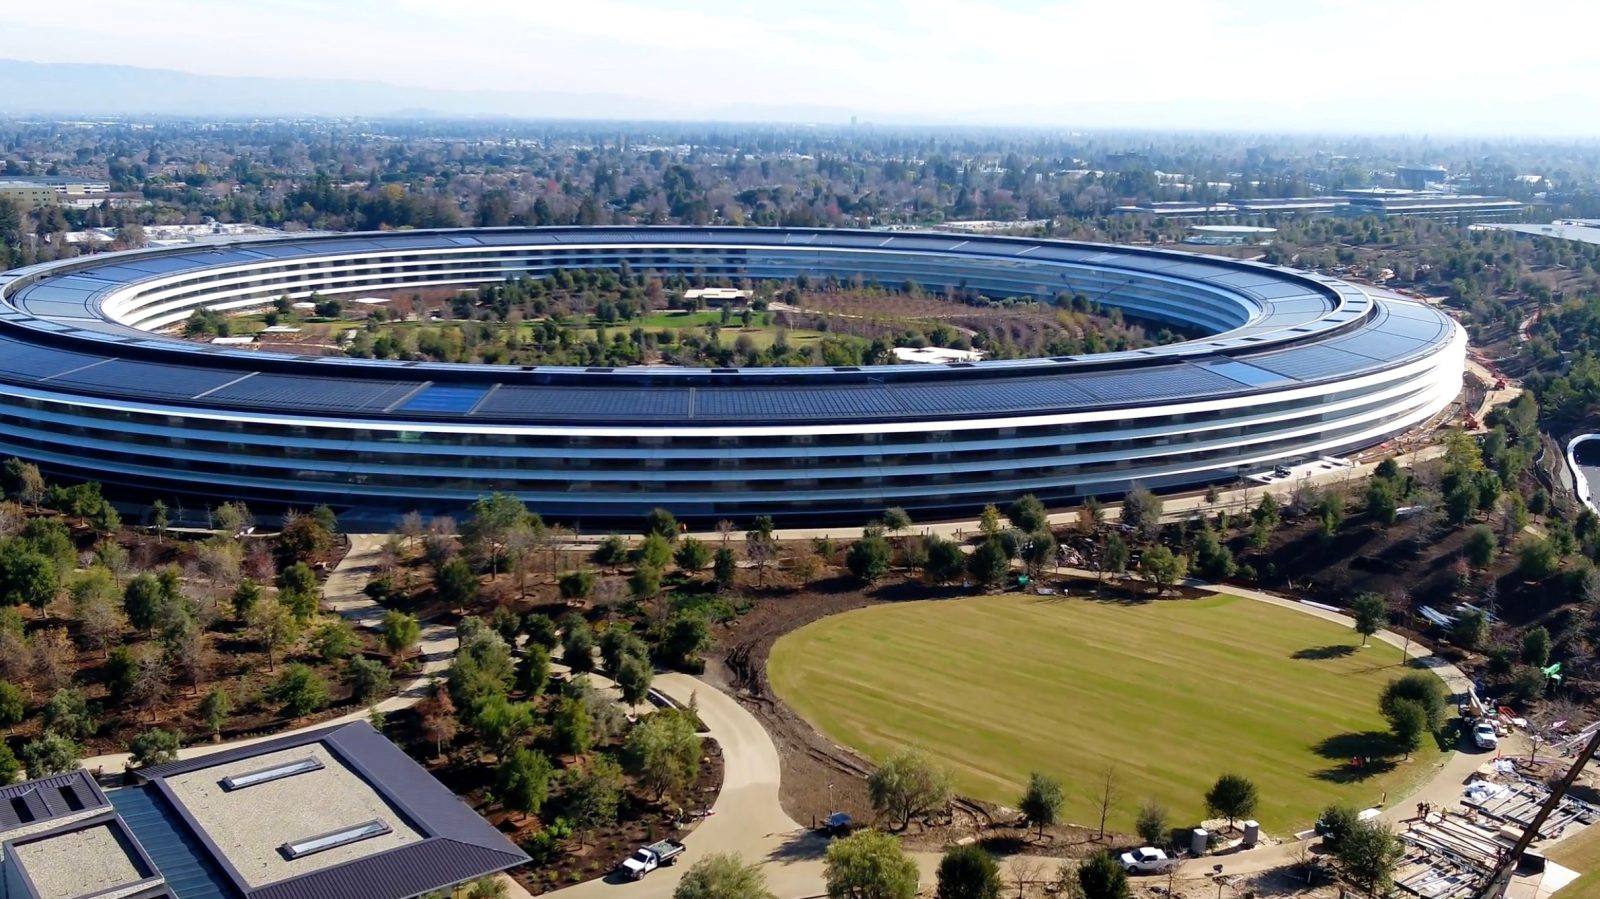 Sforum - The latest technology information page apple-park Apple Park is one of the most expensive buildings in the world when it reaches a value of up to $ 4.17 billion.